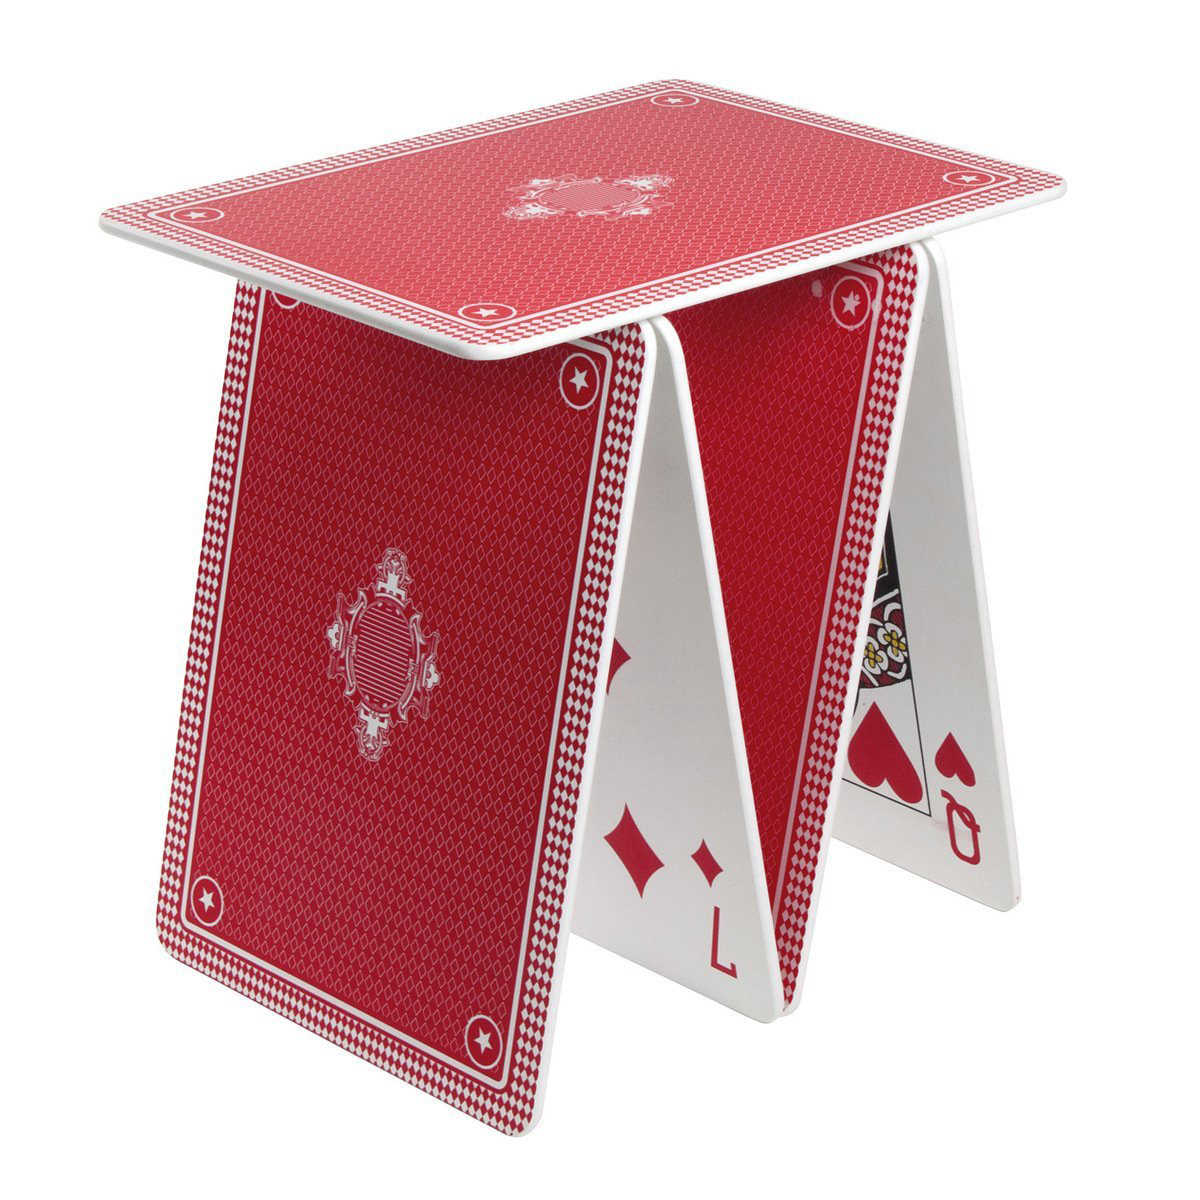 A La Carte Stackable Playing Card Table Shelf The